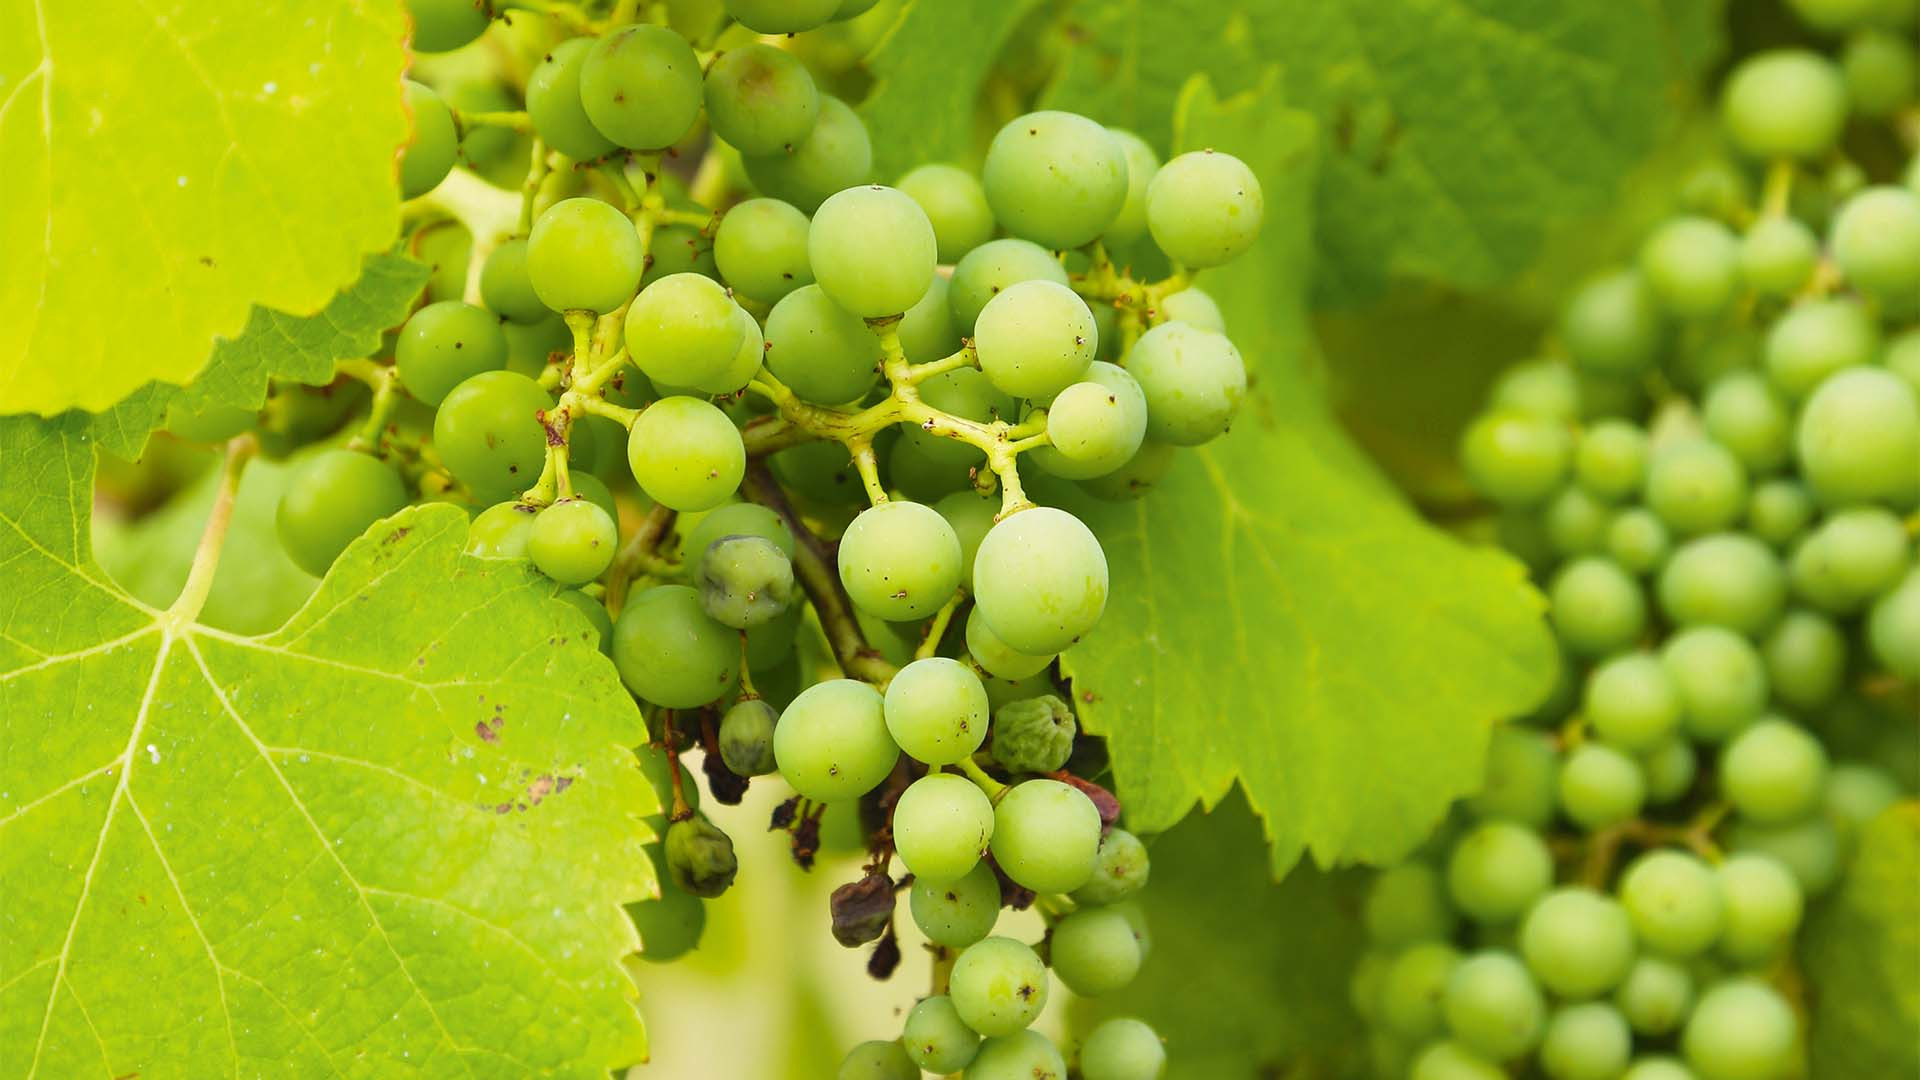 Grapes in a Bordeaux vineyard